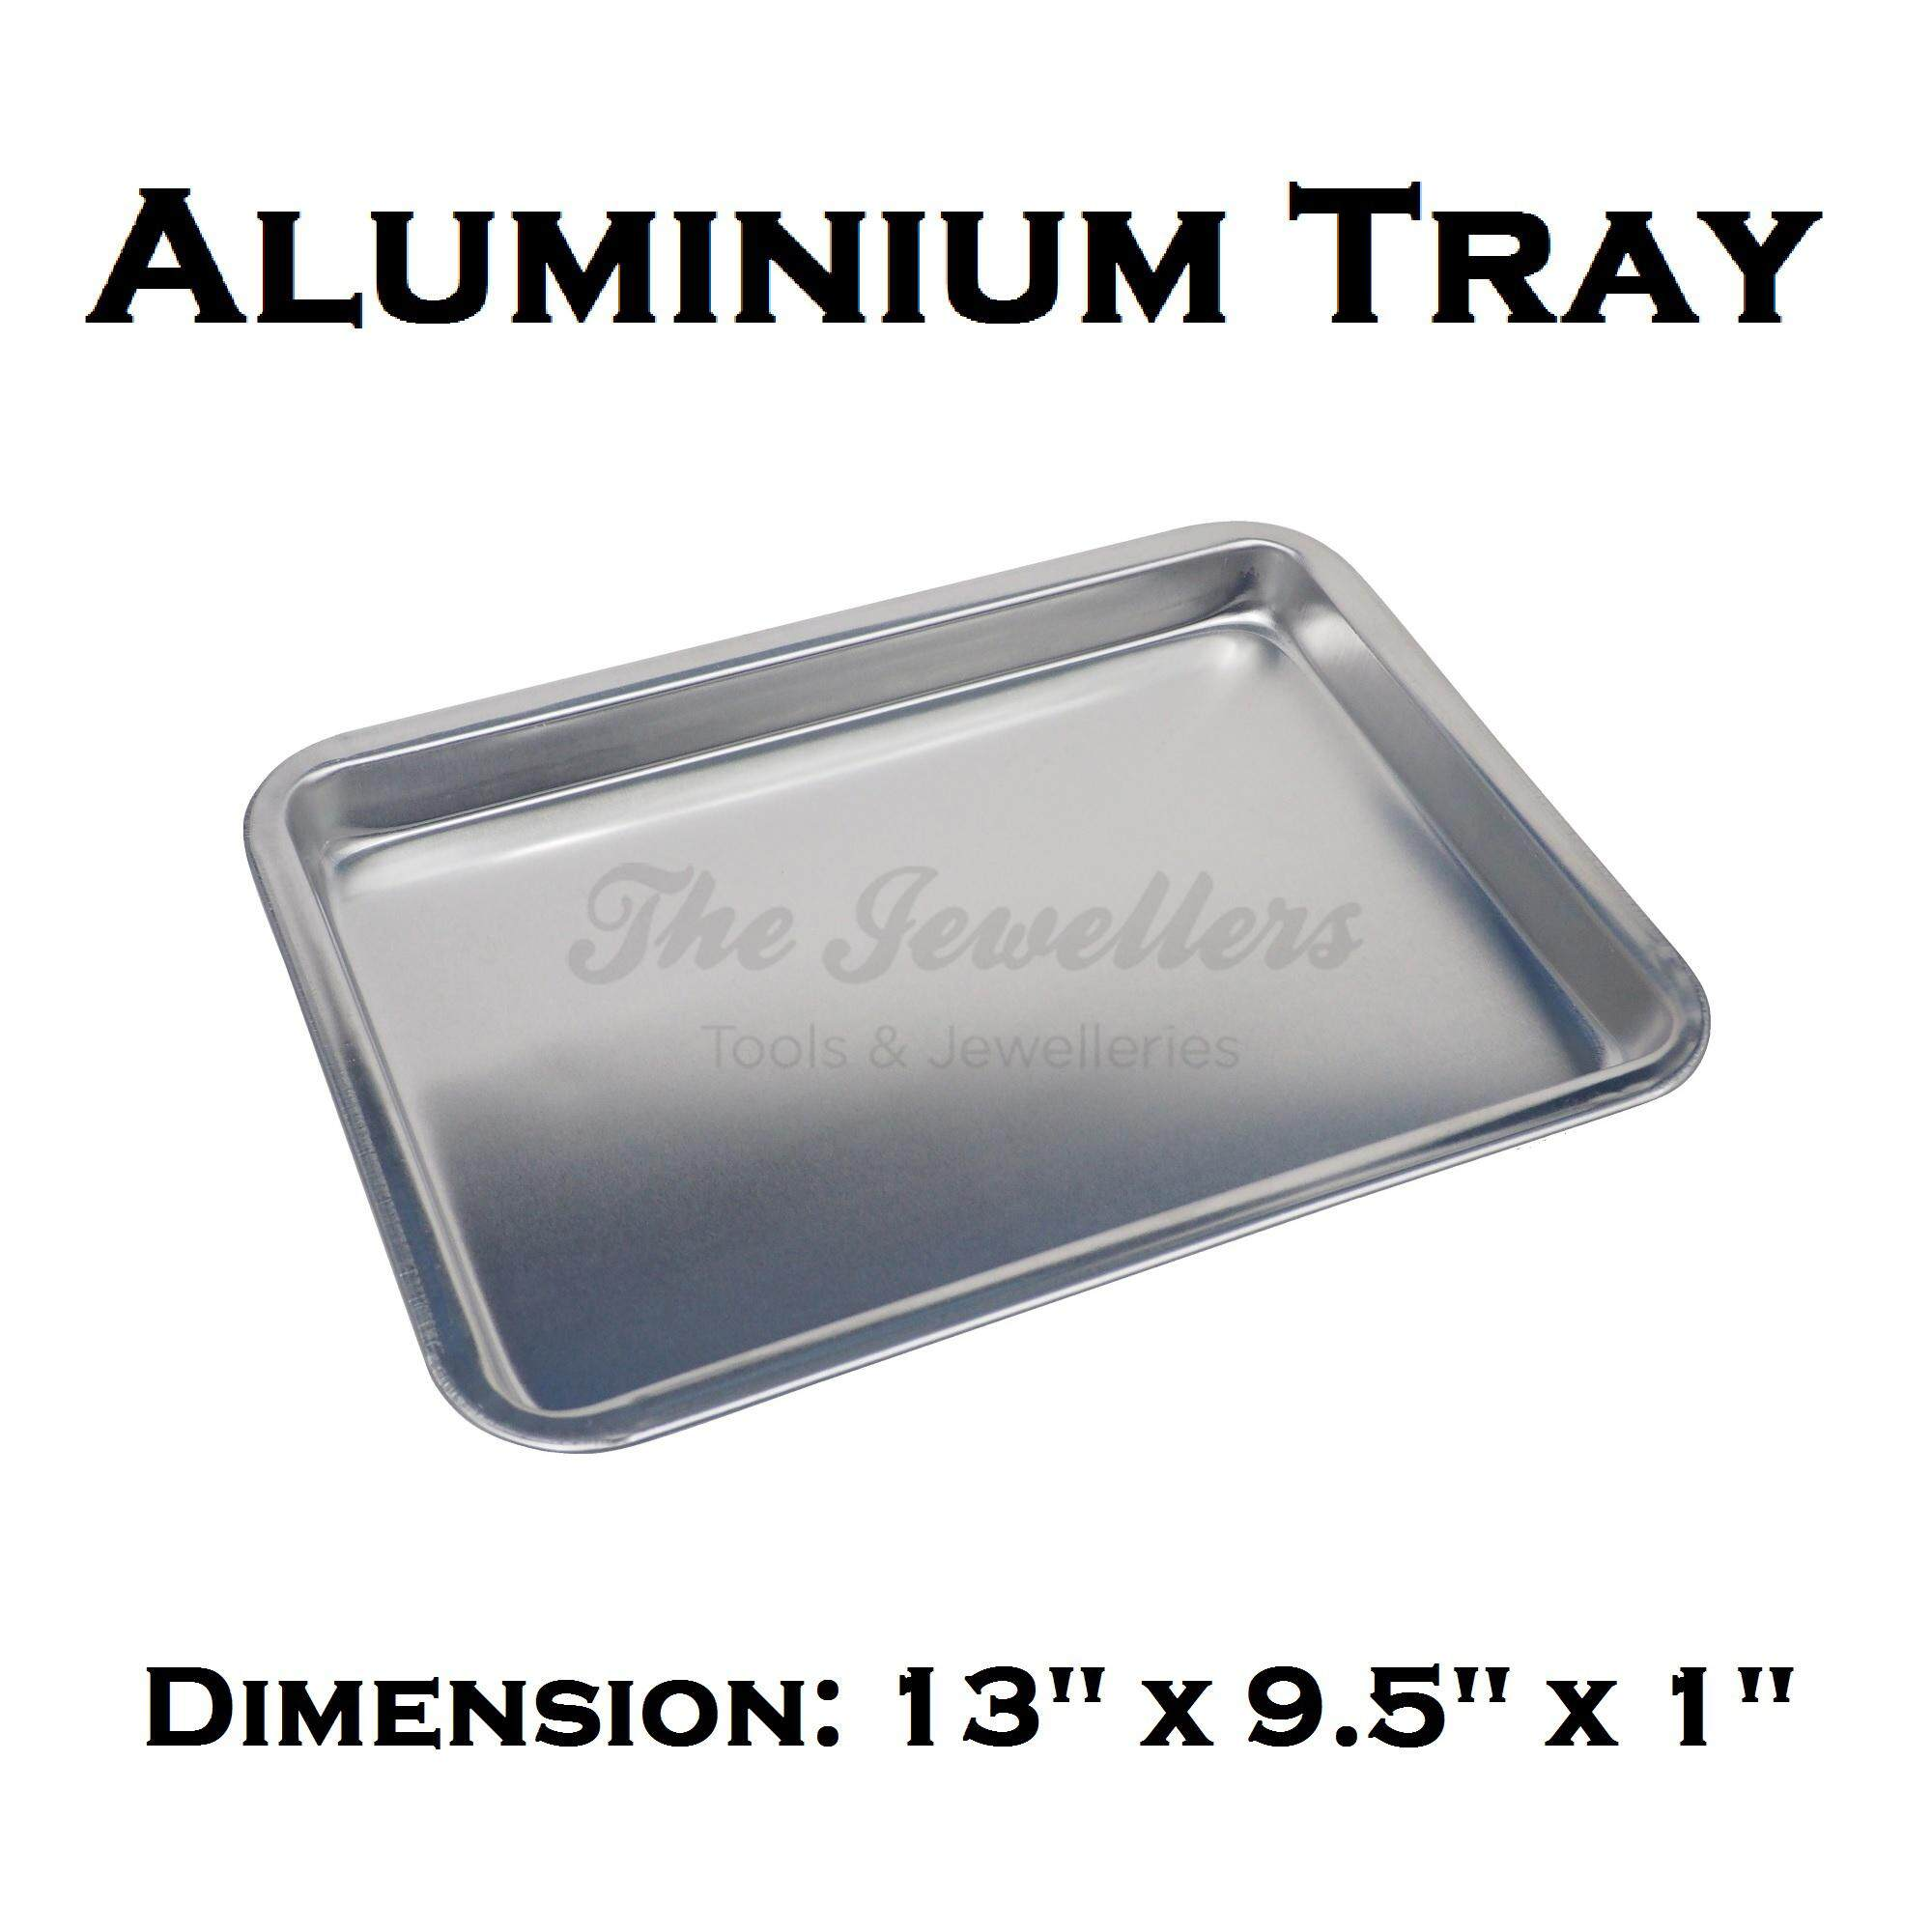 Aluminium Tray Bakeware Oven Sheet, Baking Pan Tray for Cookies, Pizza, and Cakes Dimension: 13